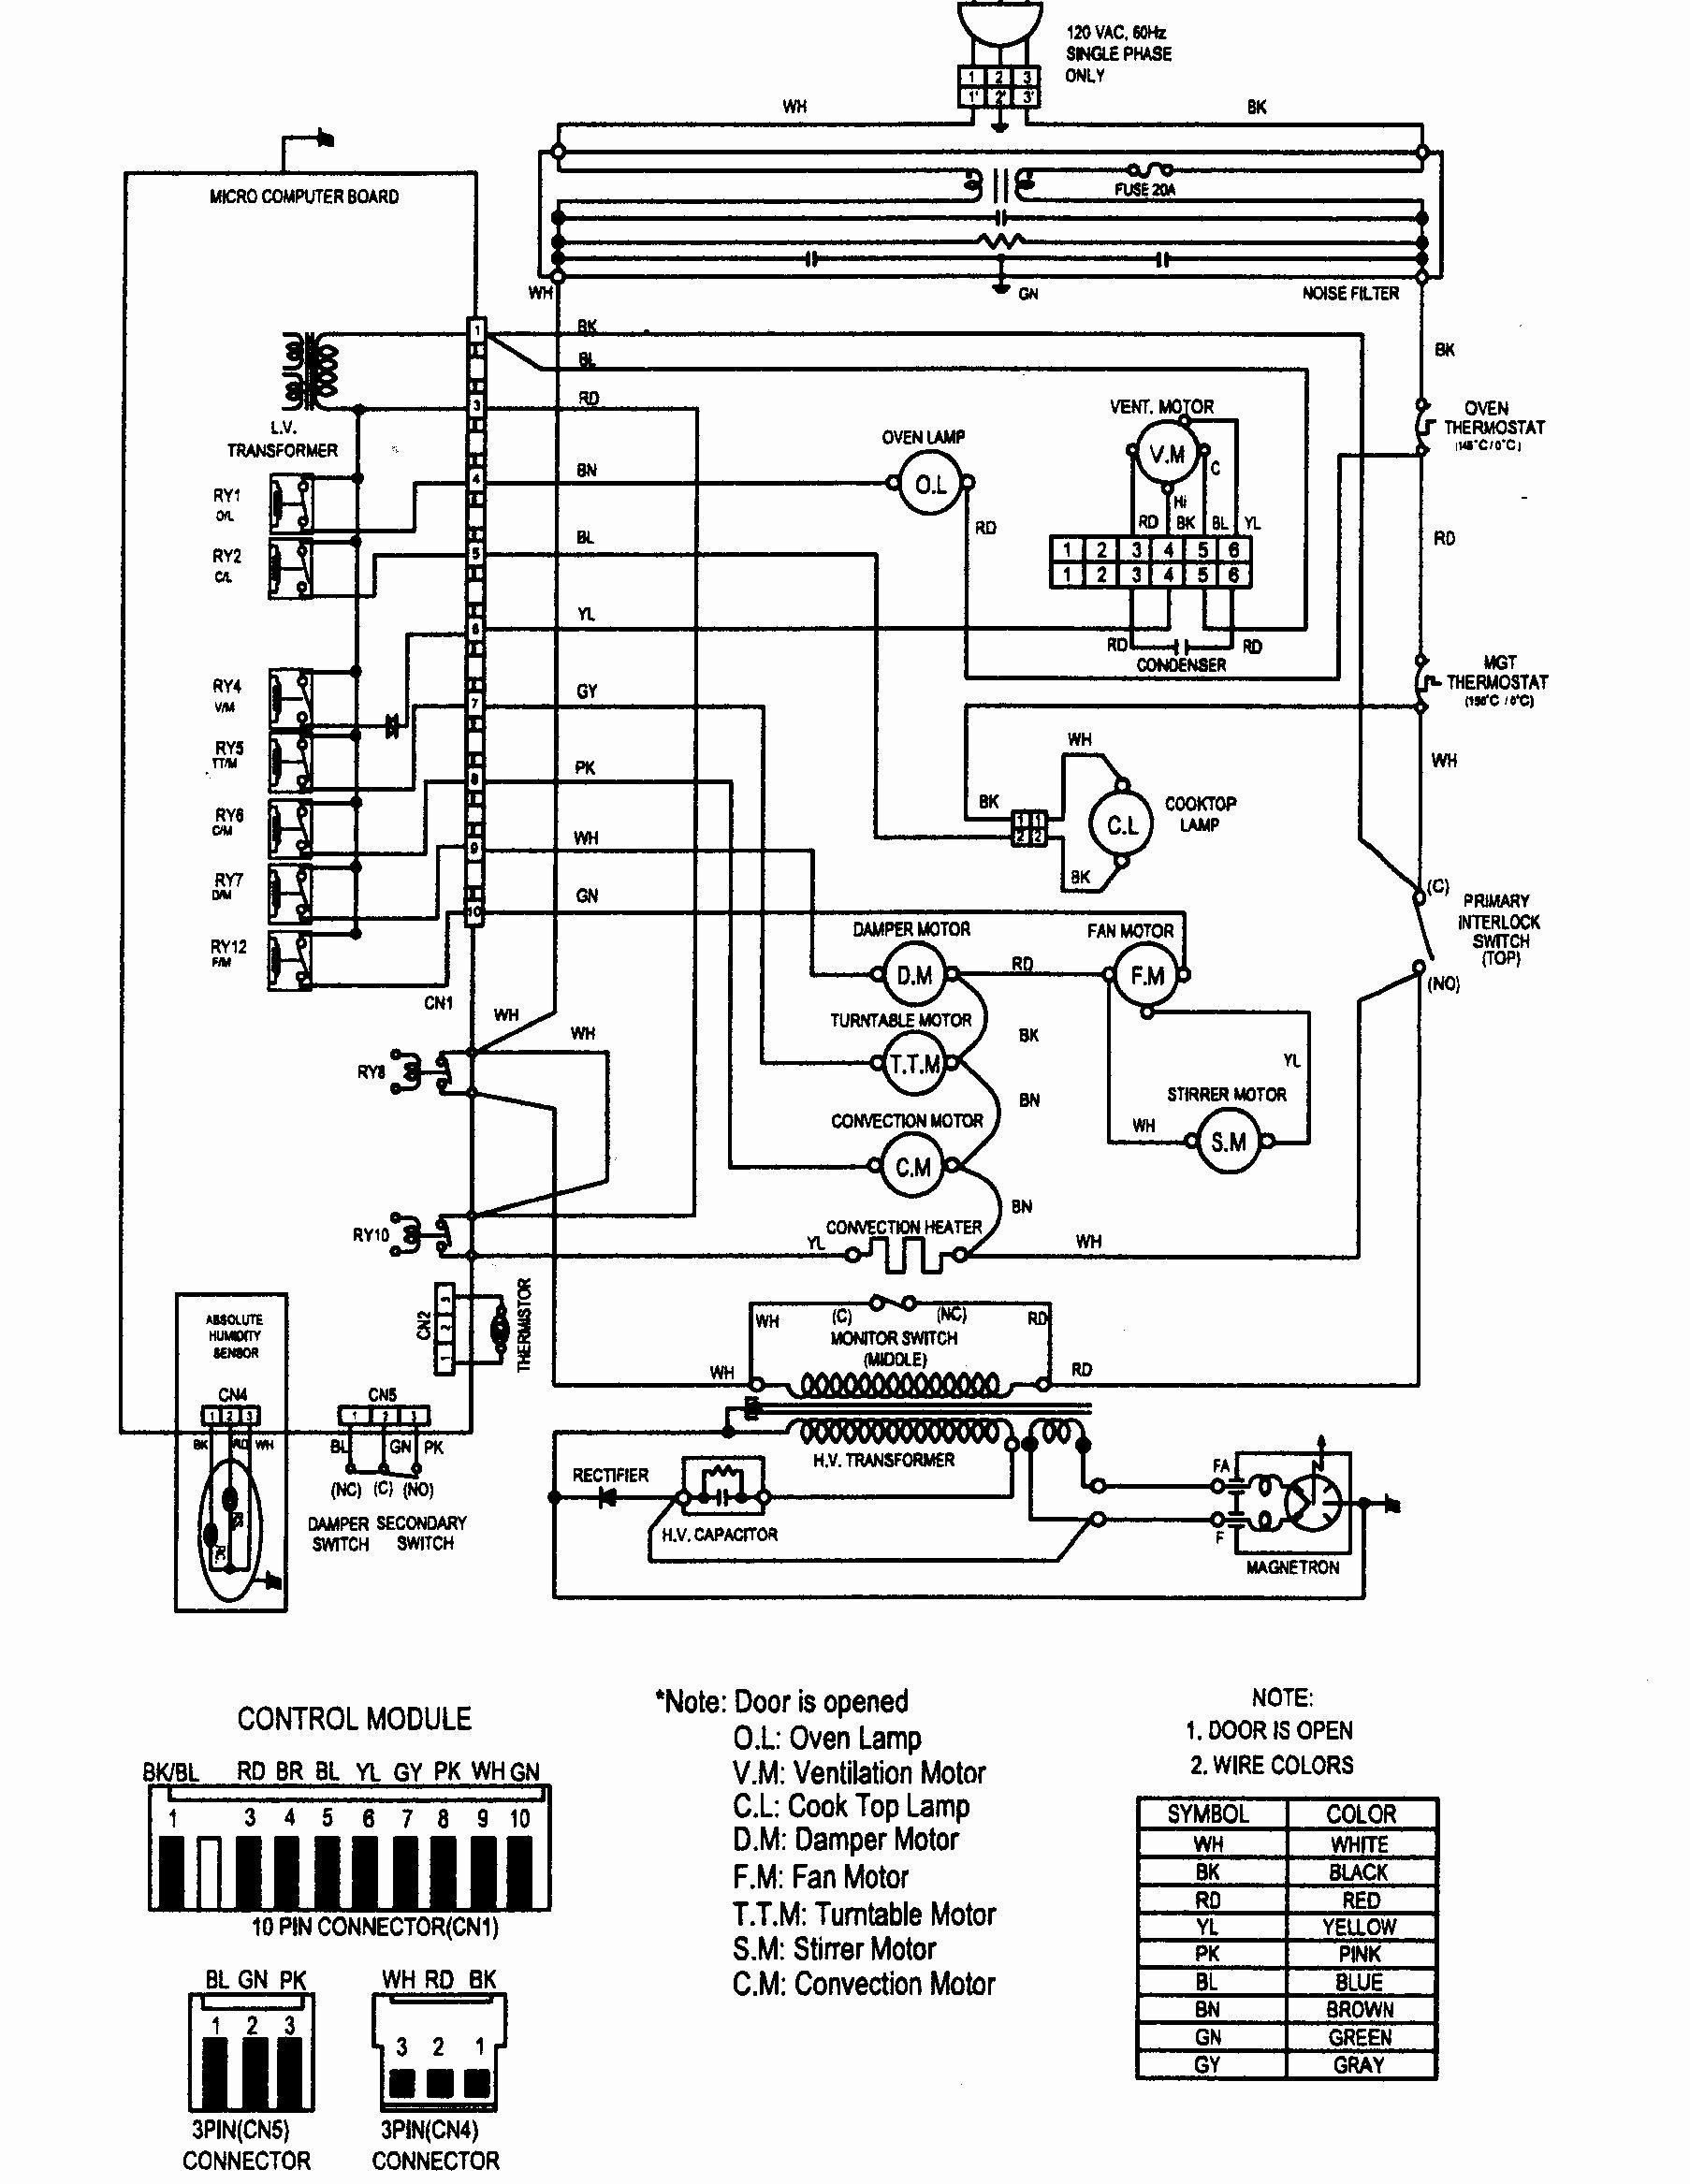 kenmore refrigerator wiring diagram Download-Kenmore Upright Freezers Glamorous Kenmore Elite Refrigerator Wiring Diagram Katherinemarie 8-d